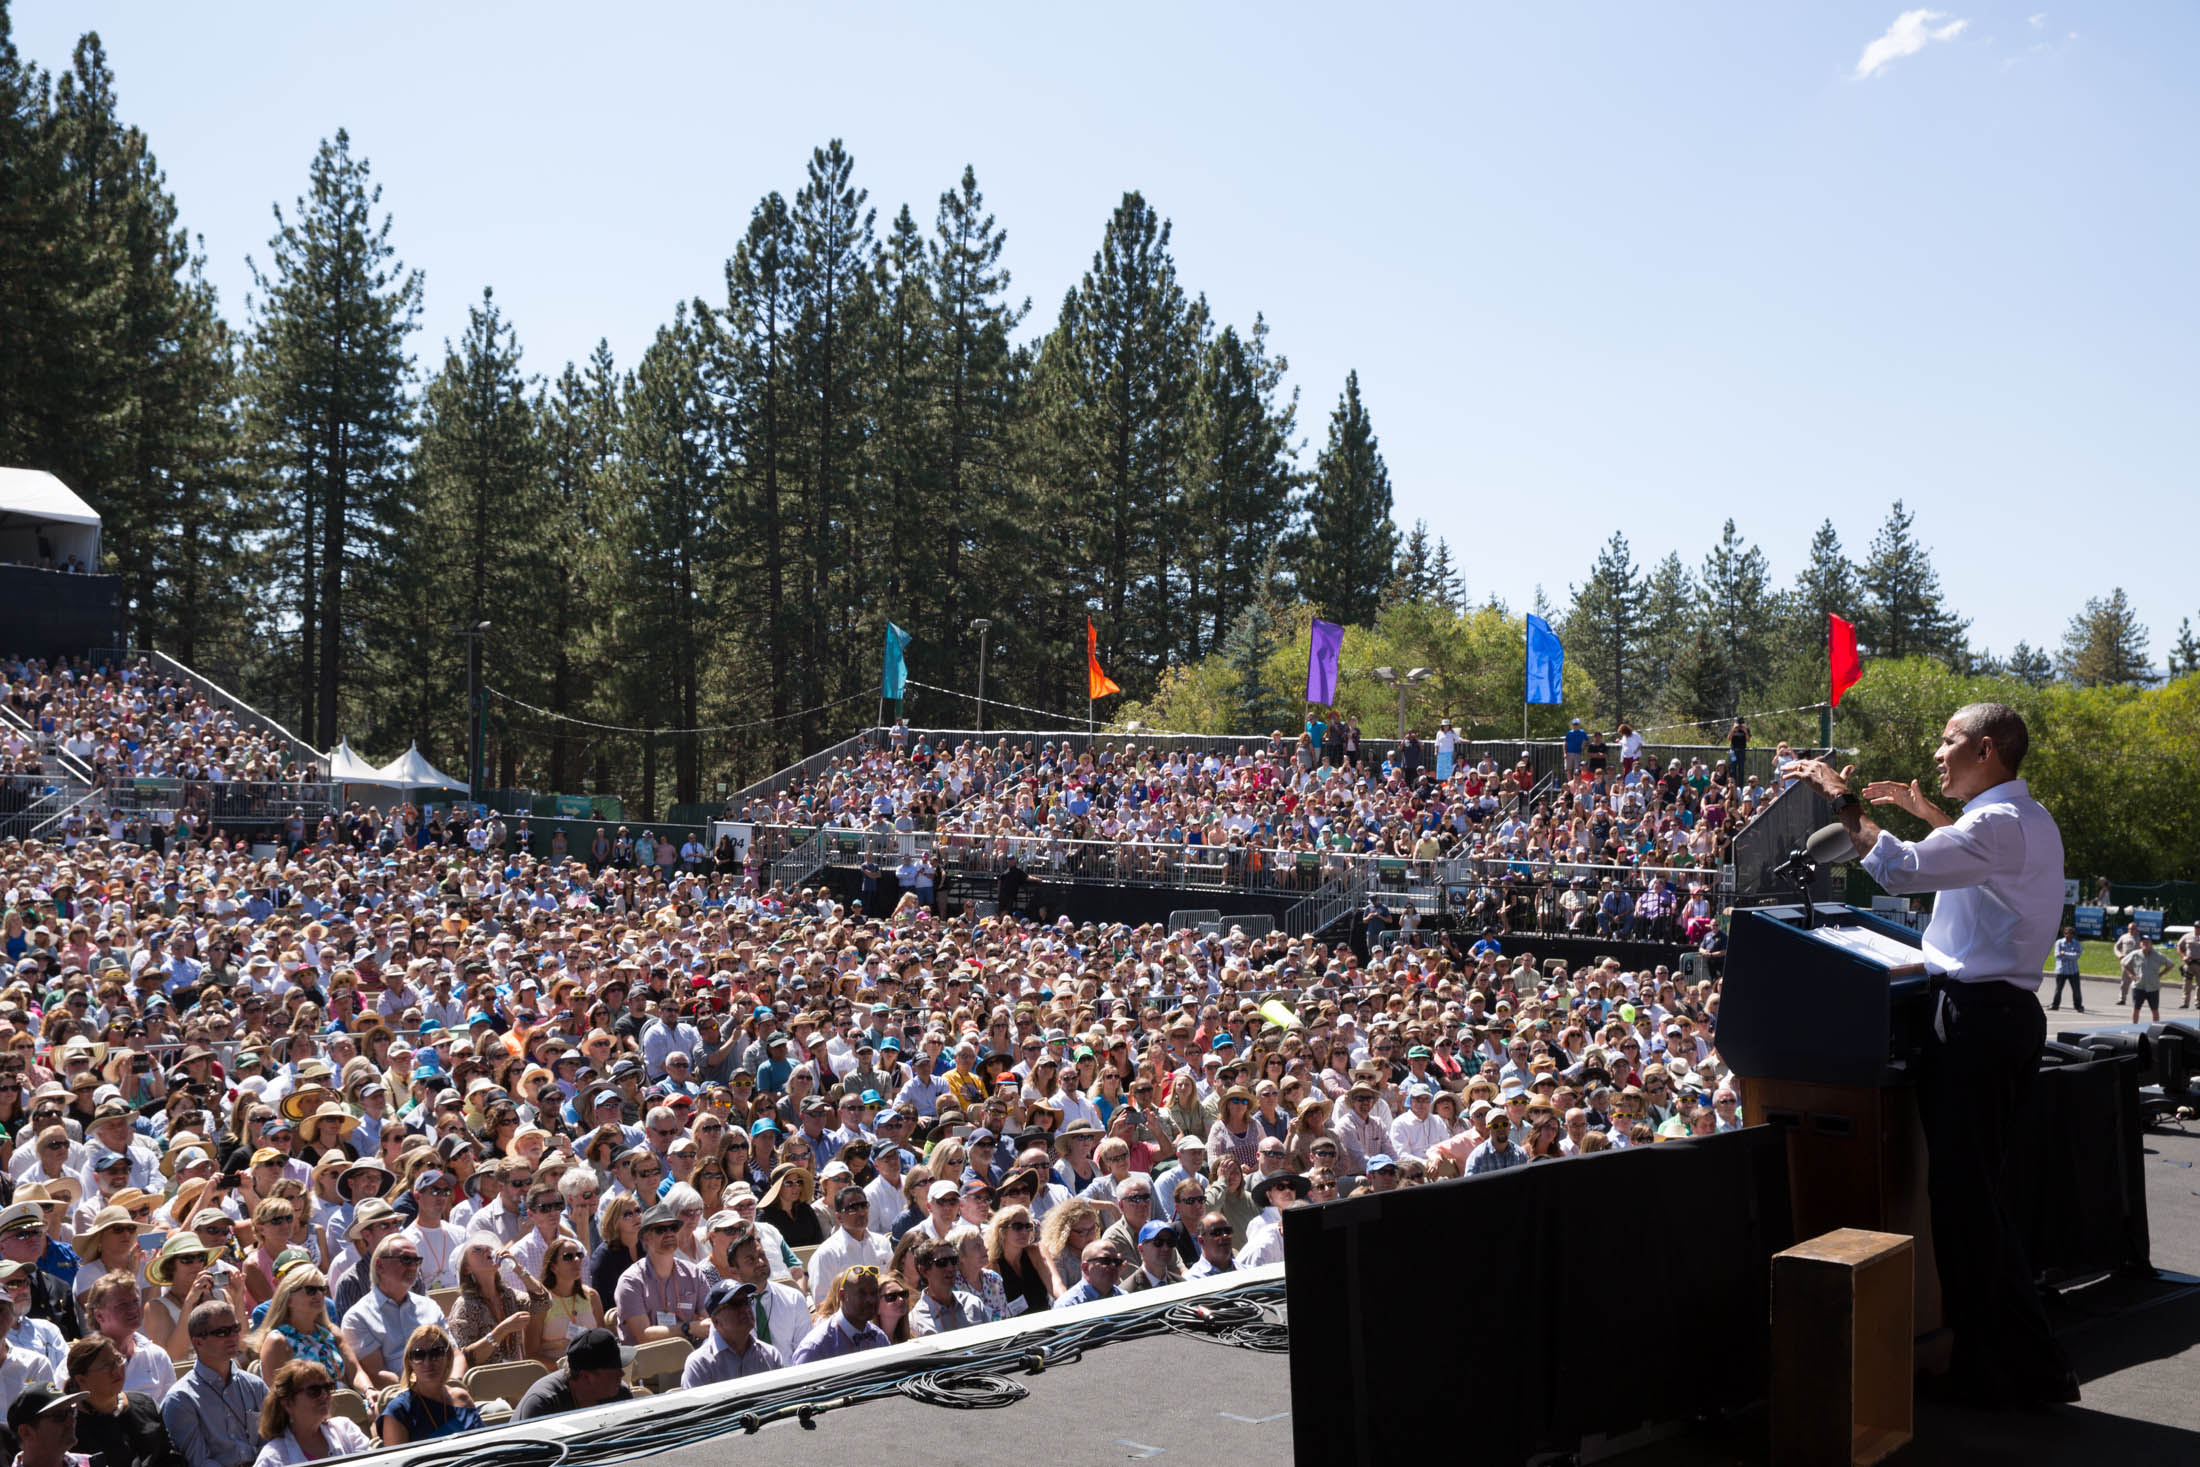 President Barack Obama makes remarks at the 20th Anniversary Lake Tahoe Summit at Lake Tahoe Outdoor Arena in Nevada, Aug. 31, 2016. (Official White House Photo by Pete Souza)